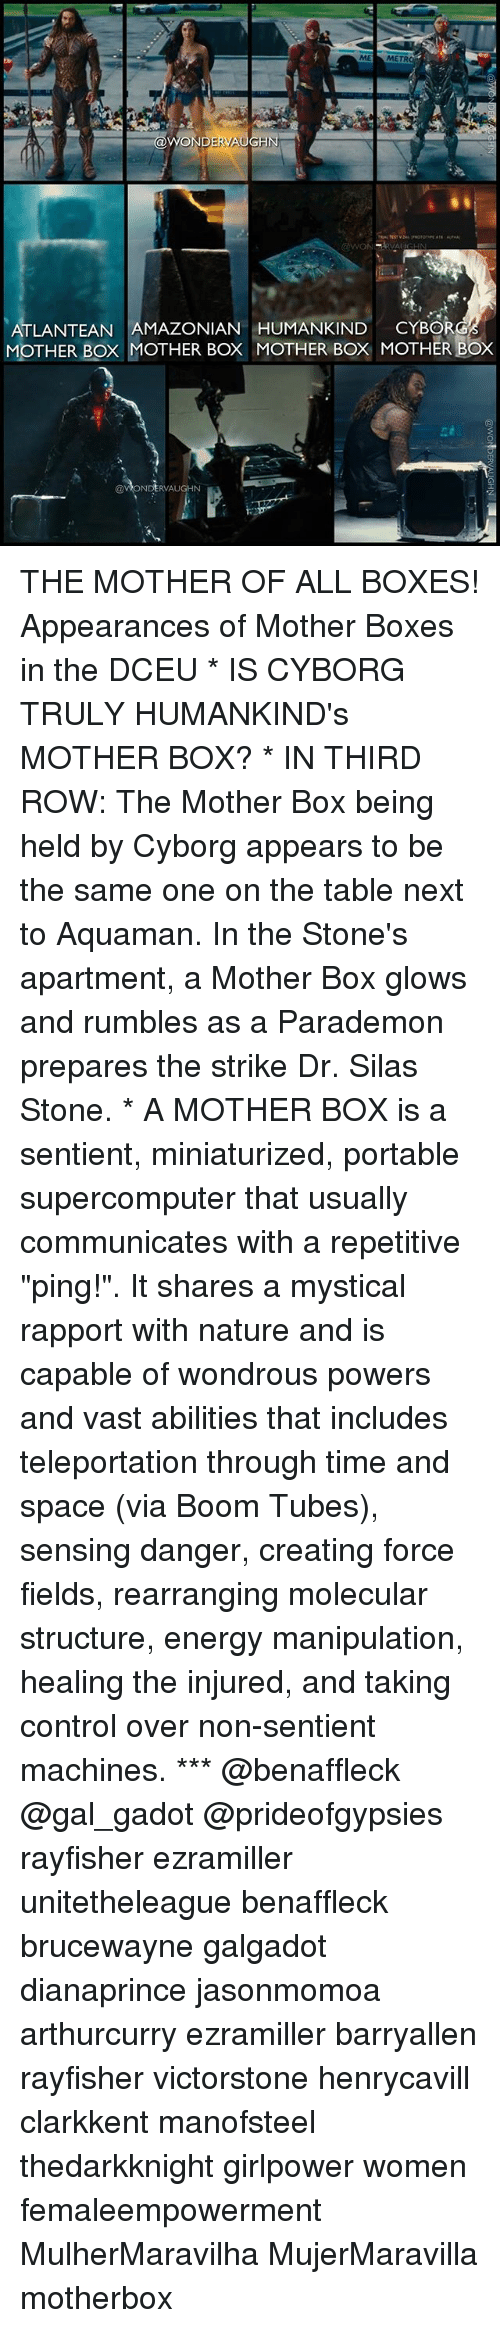 """silas: ME MET  ATLANTEAN AMAZONIAN HUMANKIND CYBOR  MOTHER BOx MOTHER Box MOTHER BOX MOTHER BOX  @VONDERVAUGHN THE MOTHER OF ALL BOXES! Appearances of Mother Boxes in the DCEU * IS CYBORG TRULY HUMANKIND's MOTHER BOX? * IN THIRD ROW: The Mother Box being held by Cyborg appears to be the same one on the table next to Aquaman. In the Stone's apartment, a Mother Box glows and rumbles as a Parademon prepares the strike Dr. Silas Stone. * A MOTHER BOX is a sentient, miniaturized, portable supercomputer that usually communicates with a repetitive """"ping!"""". It shares a mystical rapport with nature and is capable of wondrous powers and vast abilities that includes teleportation through time and space (via Boom Tubes), sensing danger, creating force fields, rearranging molecular structure, energy manipulation, healing the injured, and taking control over non-sentient machines. *** @benaffleck @gal_gadot @prideofgypsies rayfisher ezramiller unitetheleague benaffleck brucewayne galgadot dianaprince jasonmomoa arthurcurry ezramiller barryallen rayfisher victorstone henrycavill clarkkent manofsteel thedarkknight girlpower women femaleempowerment MulherMaravilha MujerMaravilla motherbox"""